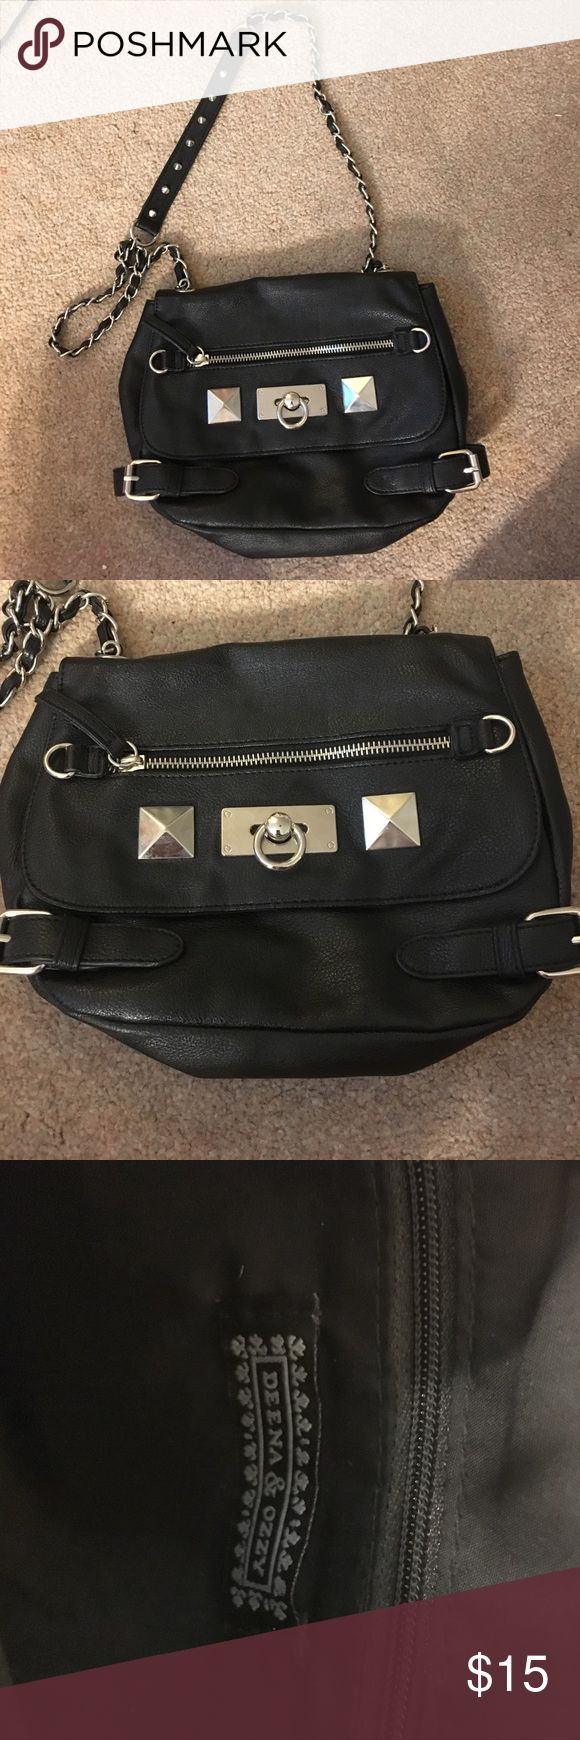 Deena & Ozzy goth bondage style purse Excellent condition. Used twice. Very cute bag. Deena & Ozzy Bags Crossbody Bags